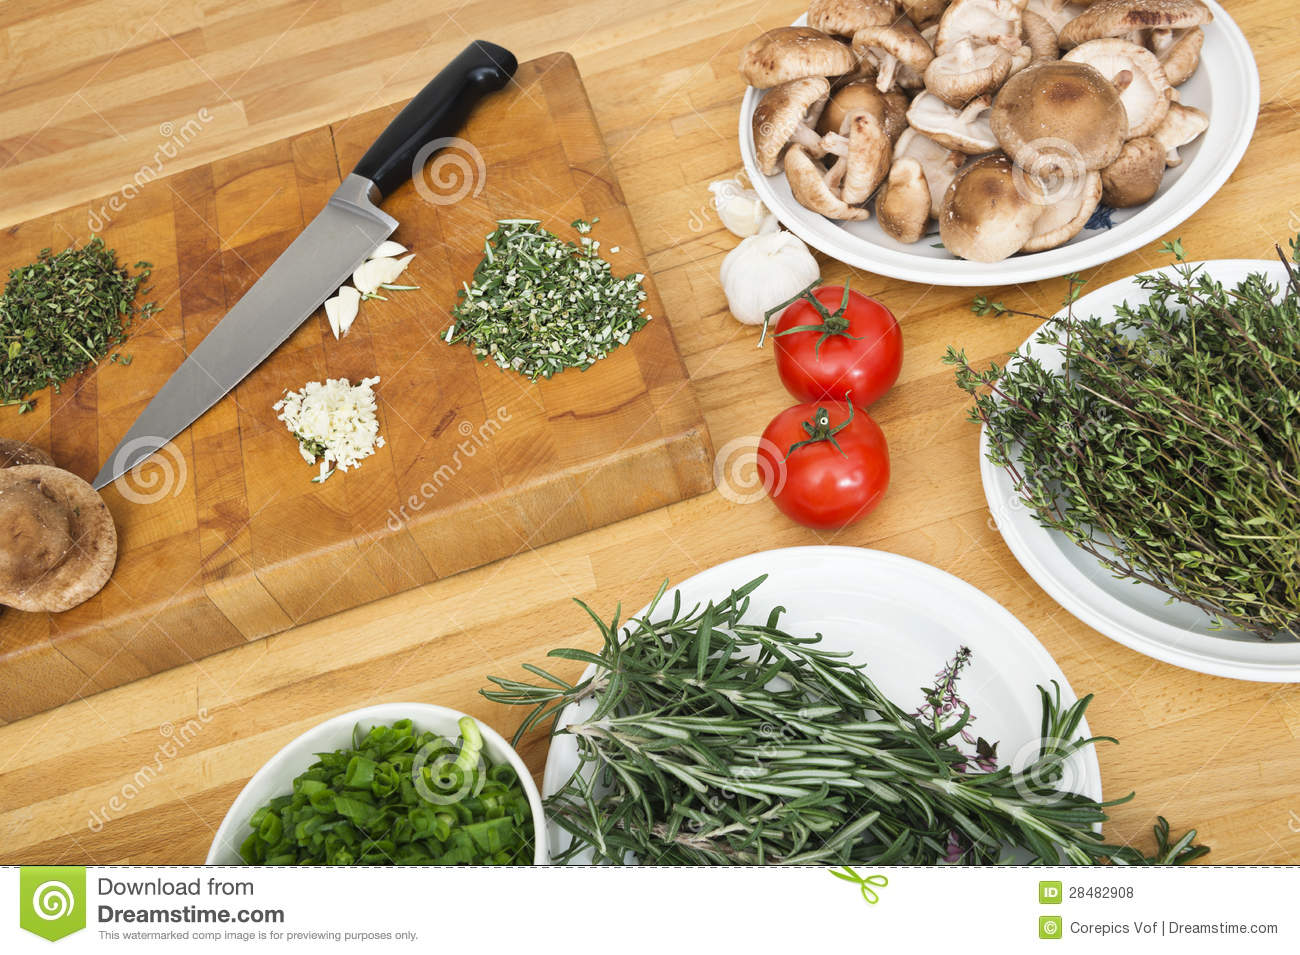 Vegetables With Chopping Board And Knife On Counter